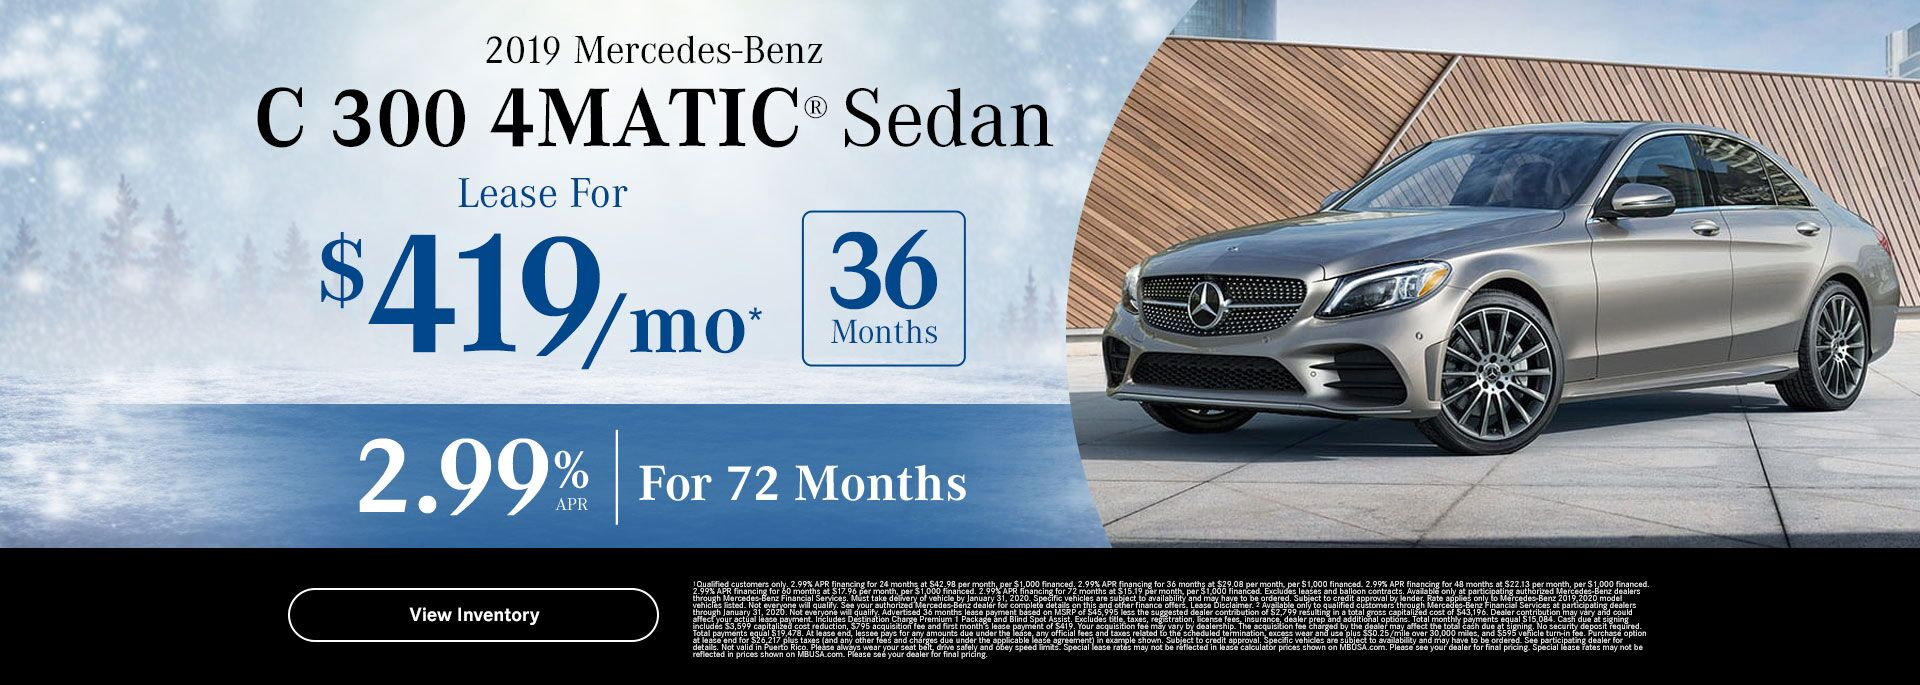 2019 C 300 4MATIC lease special